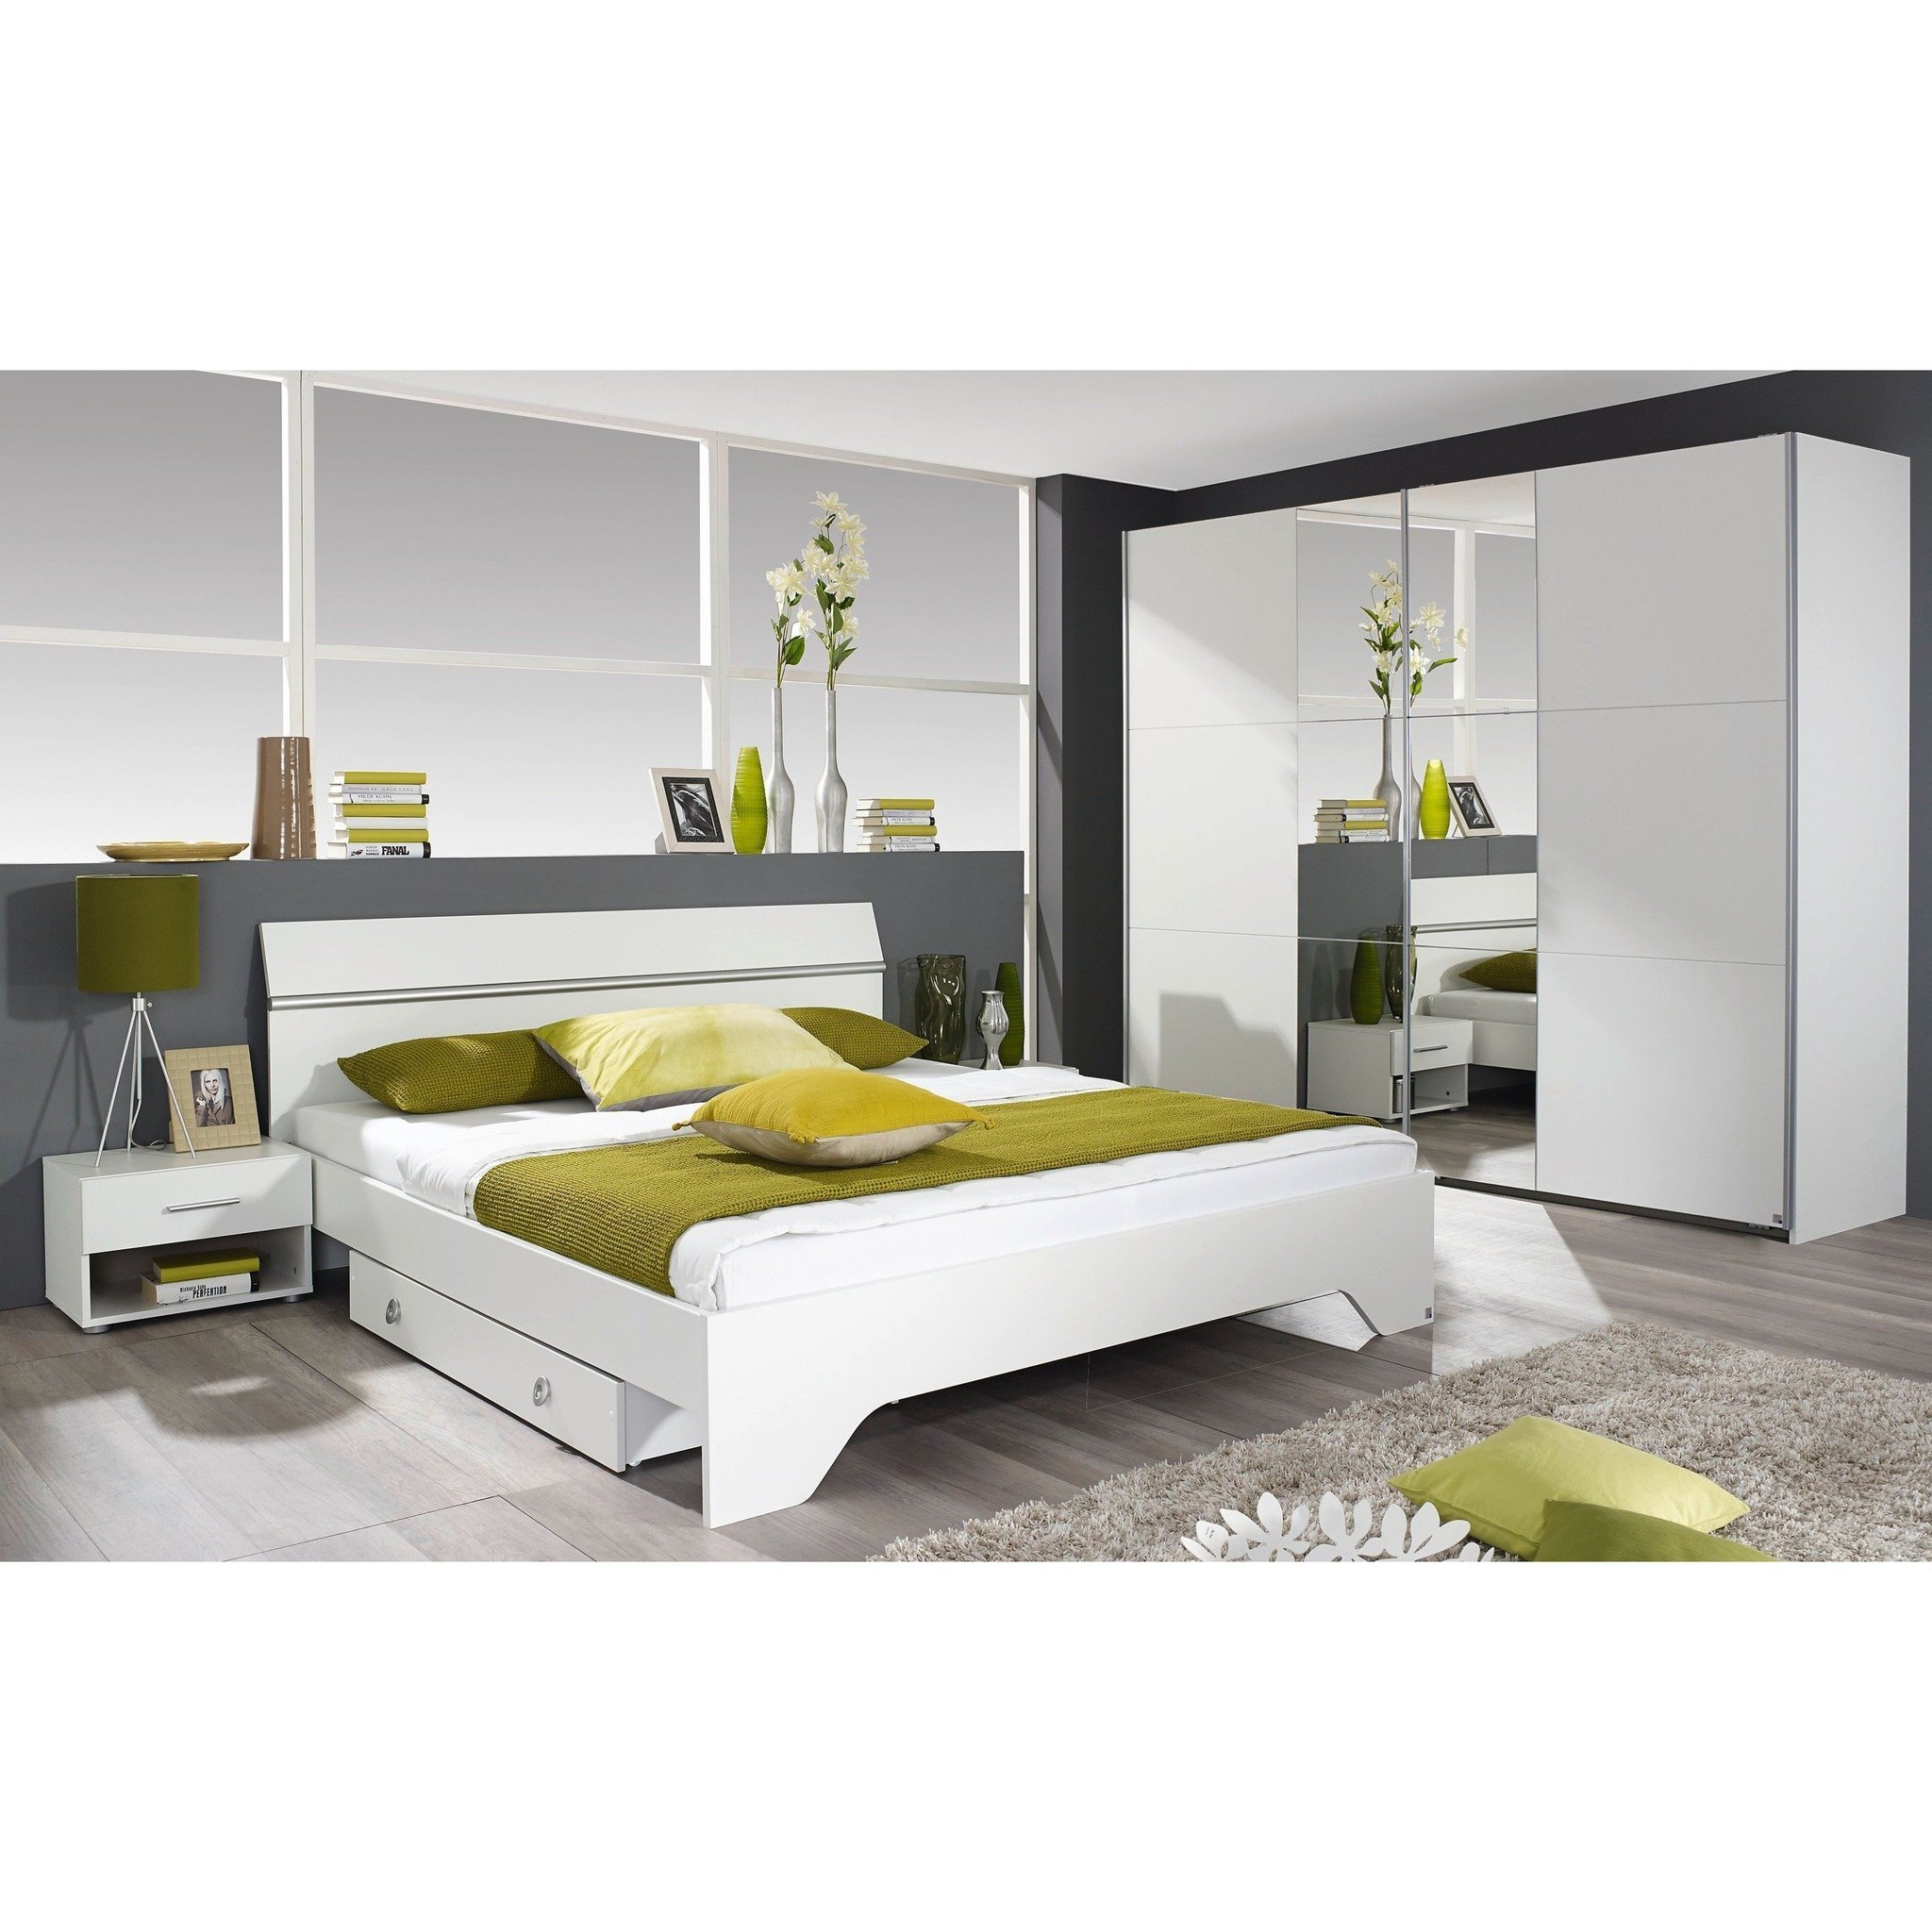 Best Rauch Fellbach Range German Made Bedroom Furniture White Finish – Freedom Homestore With Pictures